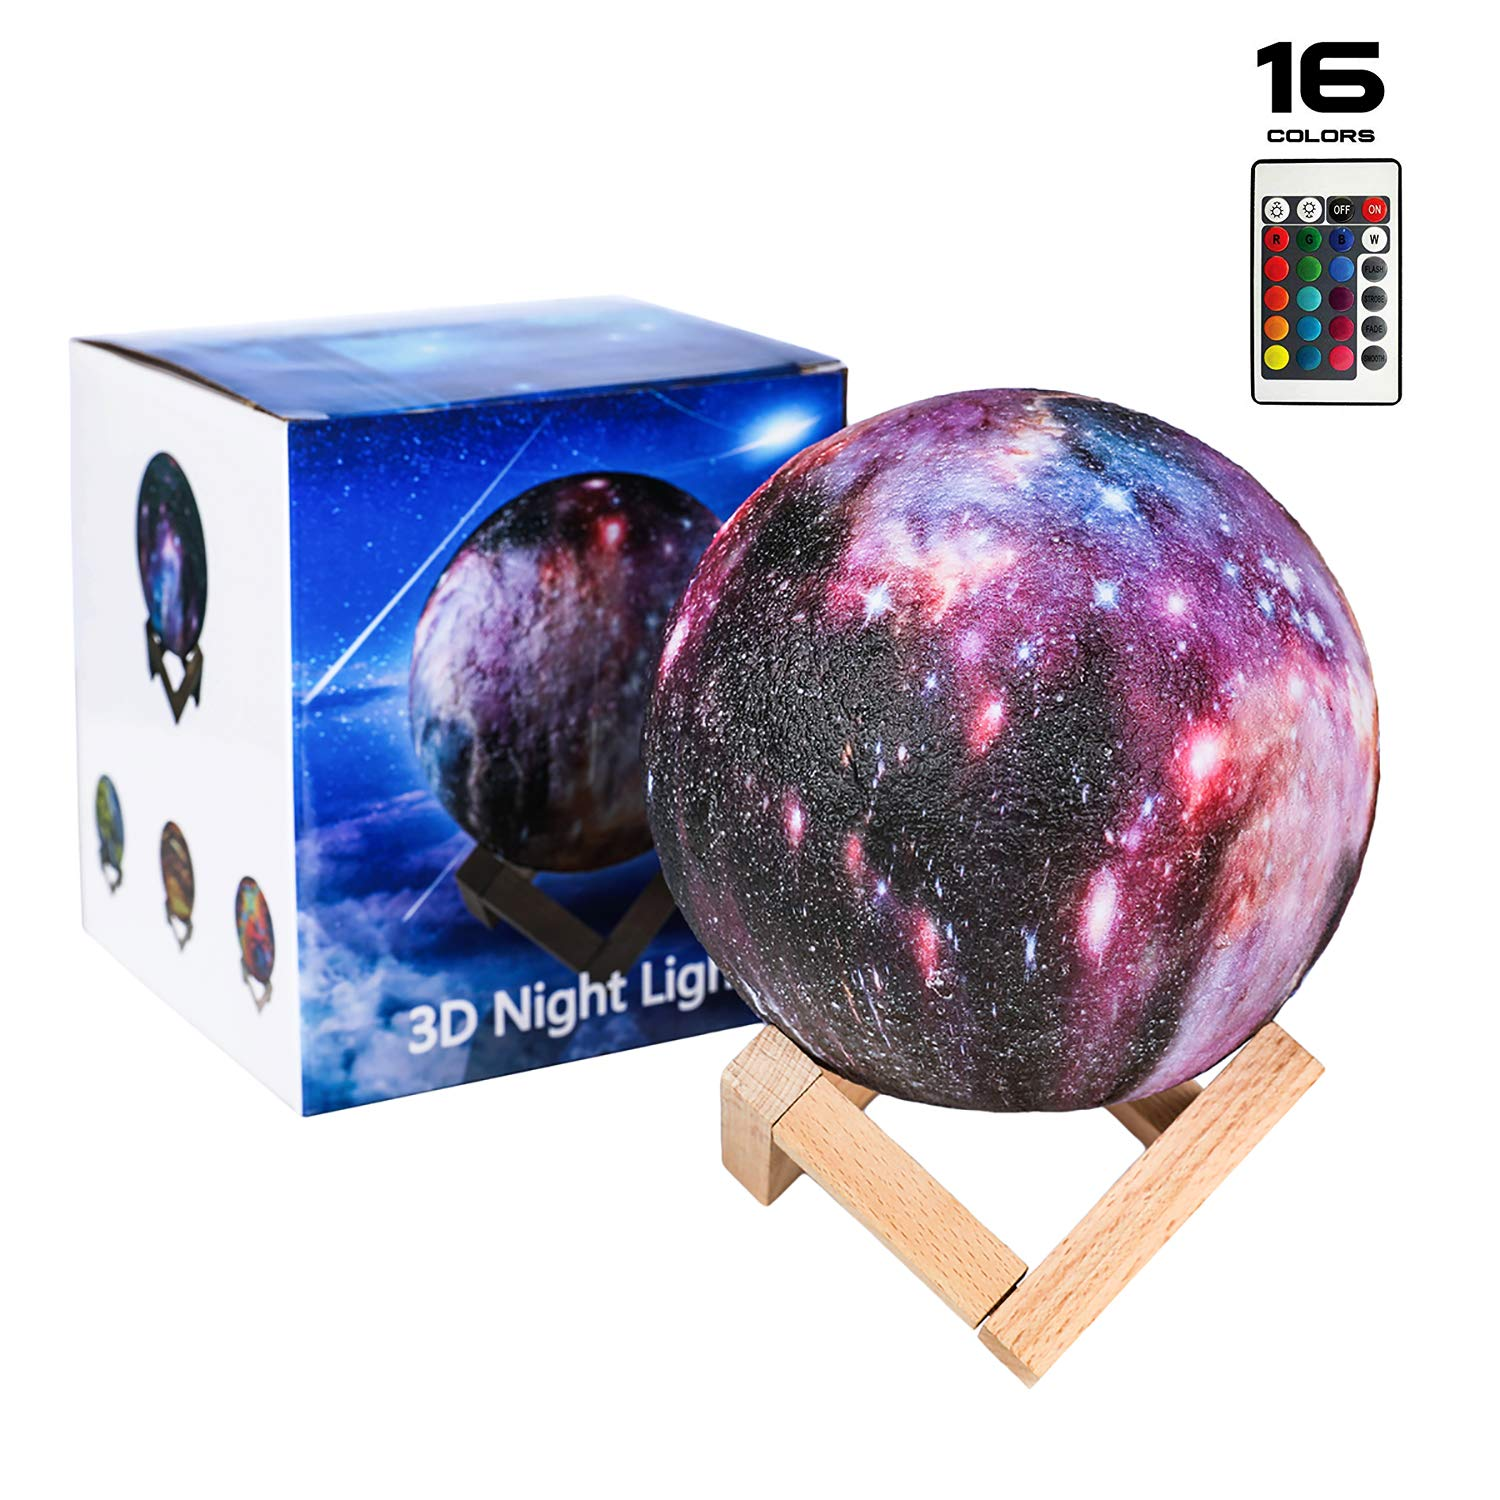 SEGOAL Moon Lamp 5.9 Inch Night Light for Kids 3D Printing Moon Light Lamp with Stand, Touch & Remote Control 16 Colors and USB Charging Decorative Star Night Light, Best Gifts for Kids Girls Lover